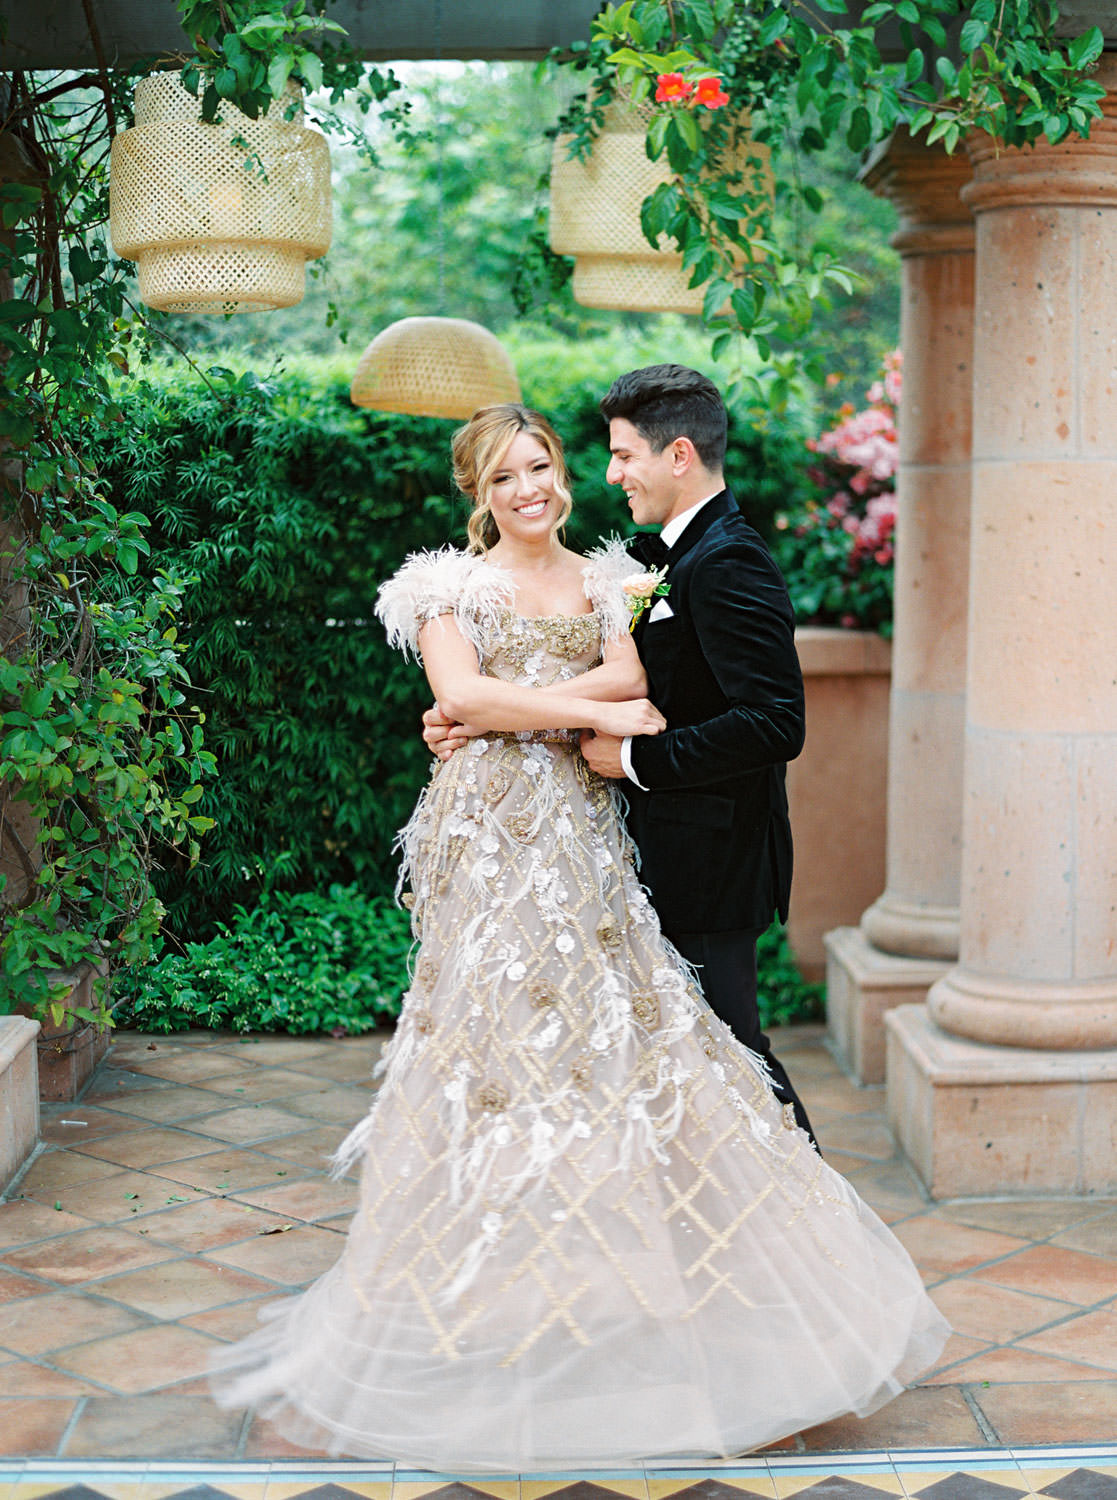 Groom in black velvet tuxedo dancing with bride wearing a Marchesa couture gown with blush feathers, gold lines, and floral embellishments. Honey and Beekeeper Inspired Wedding at Rancho Valencia on film by Cavin Elizabeth Photography